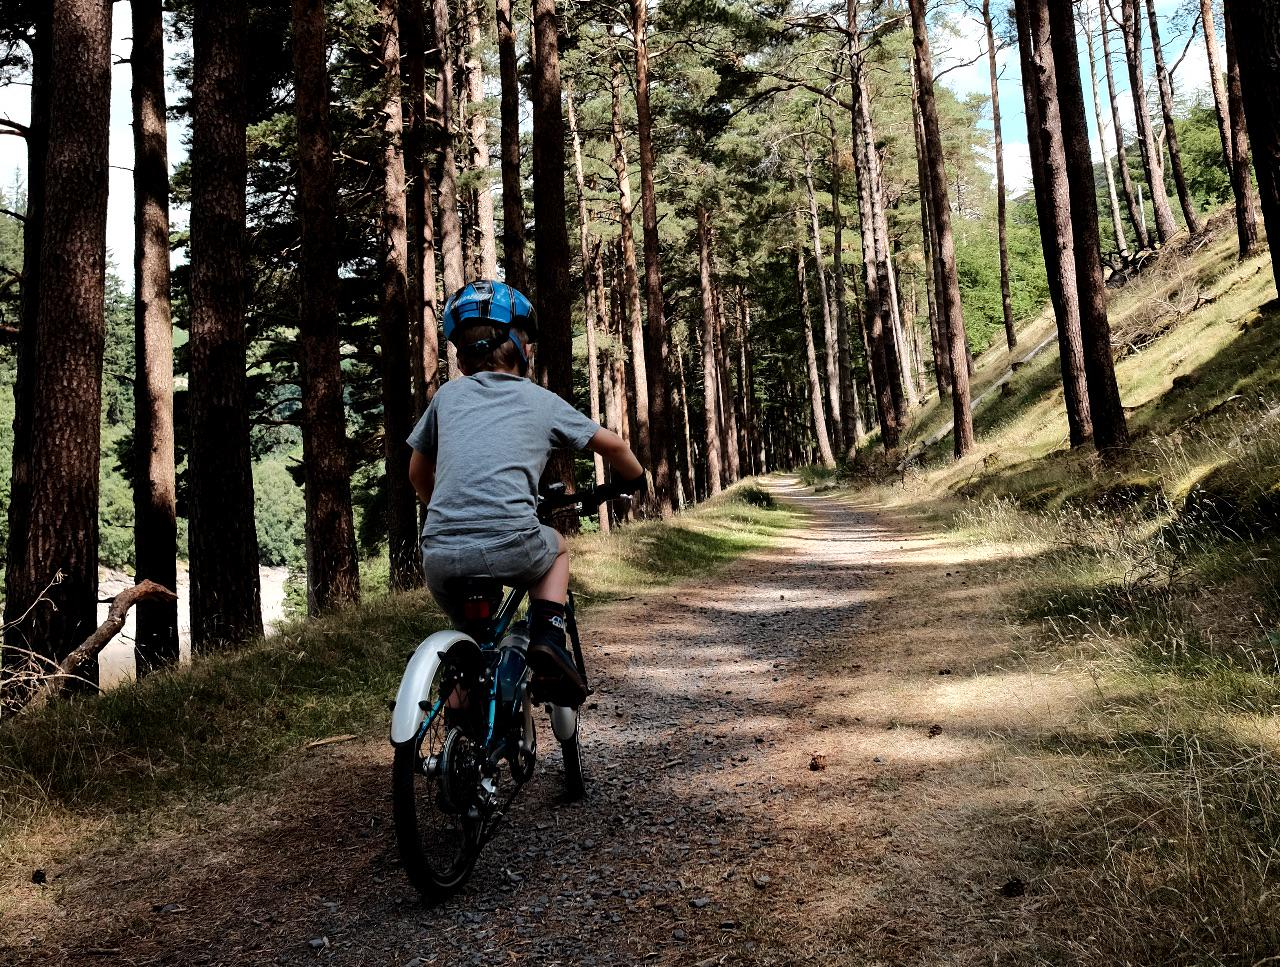 A child rides their bike up a trail through the trees on the Elan Valley Trail